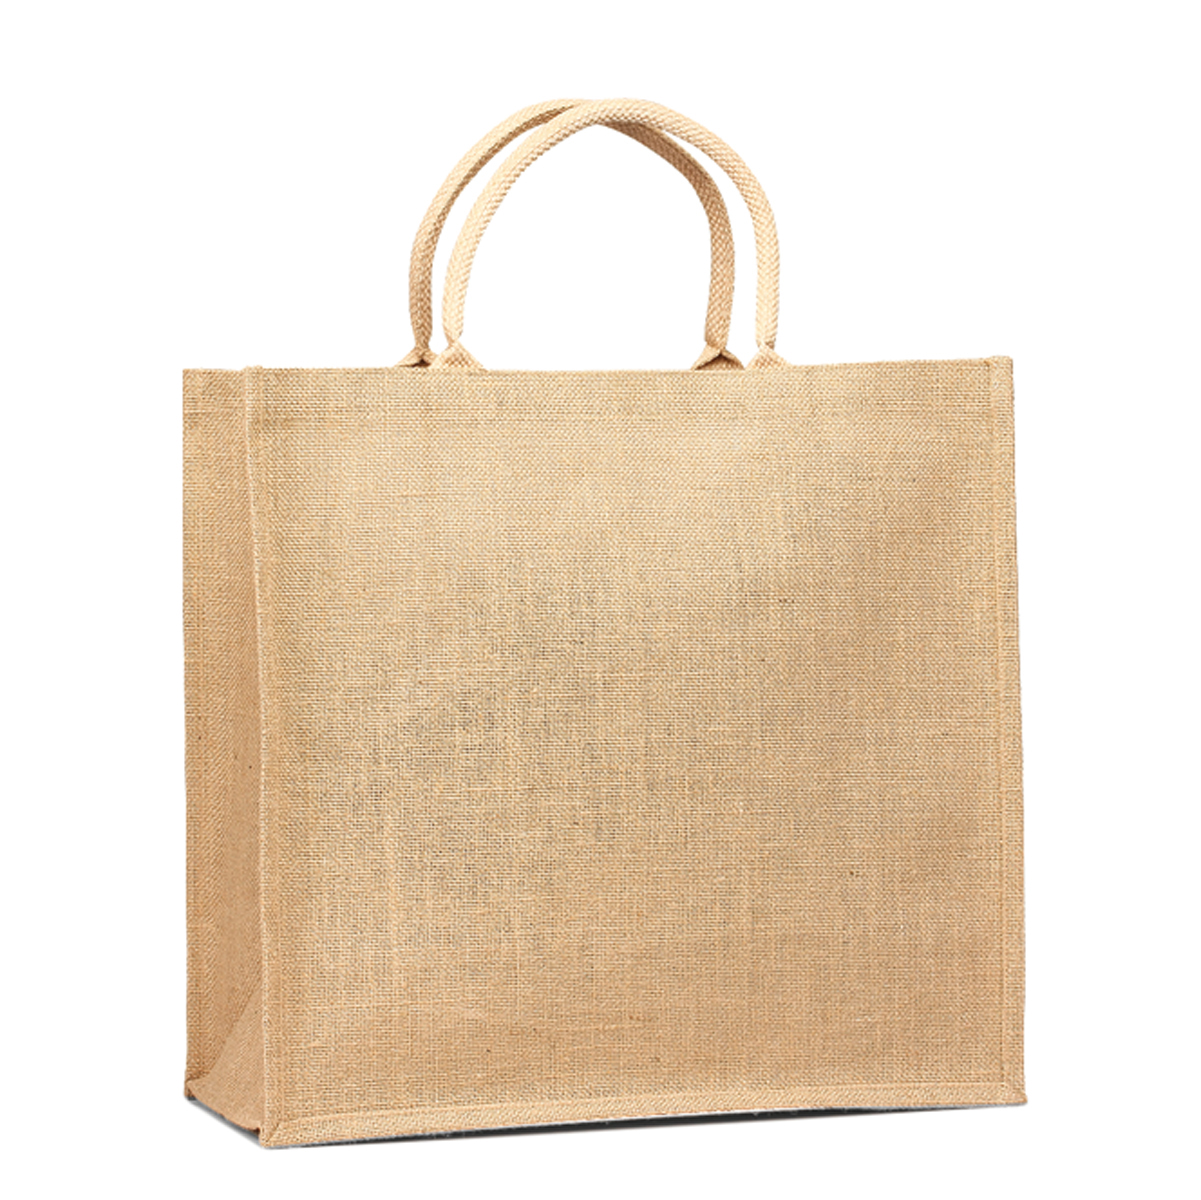 fashion jute tote bag with leather handles